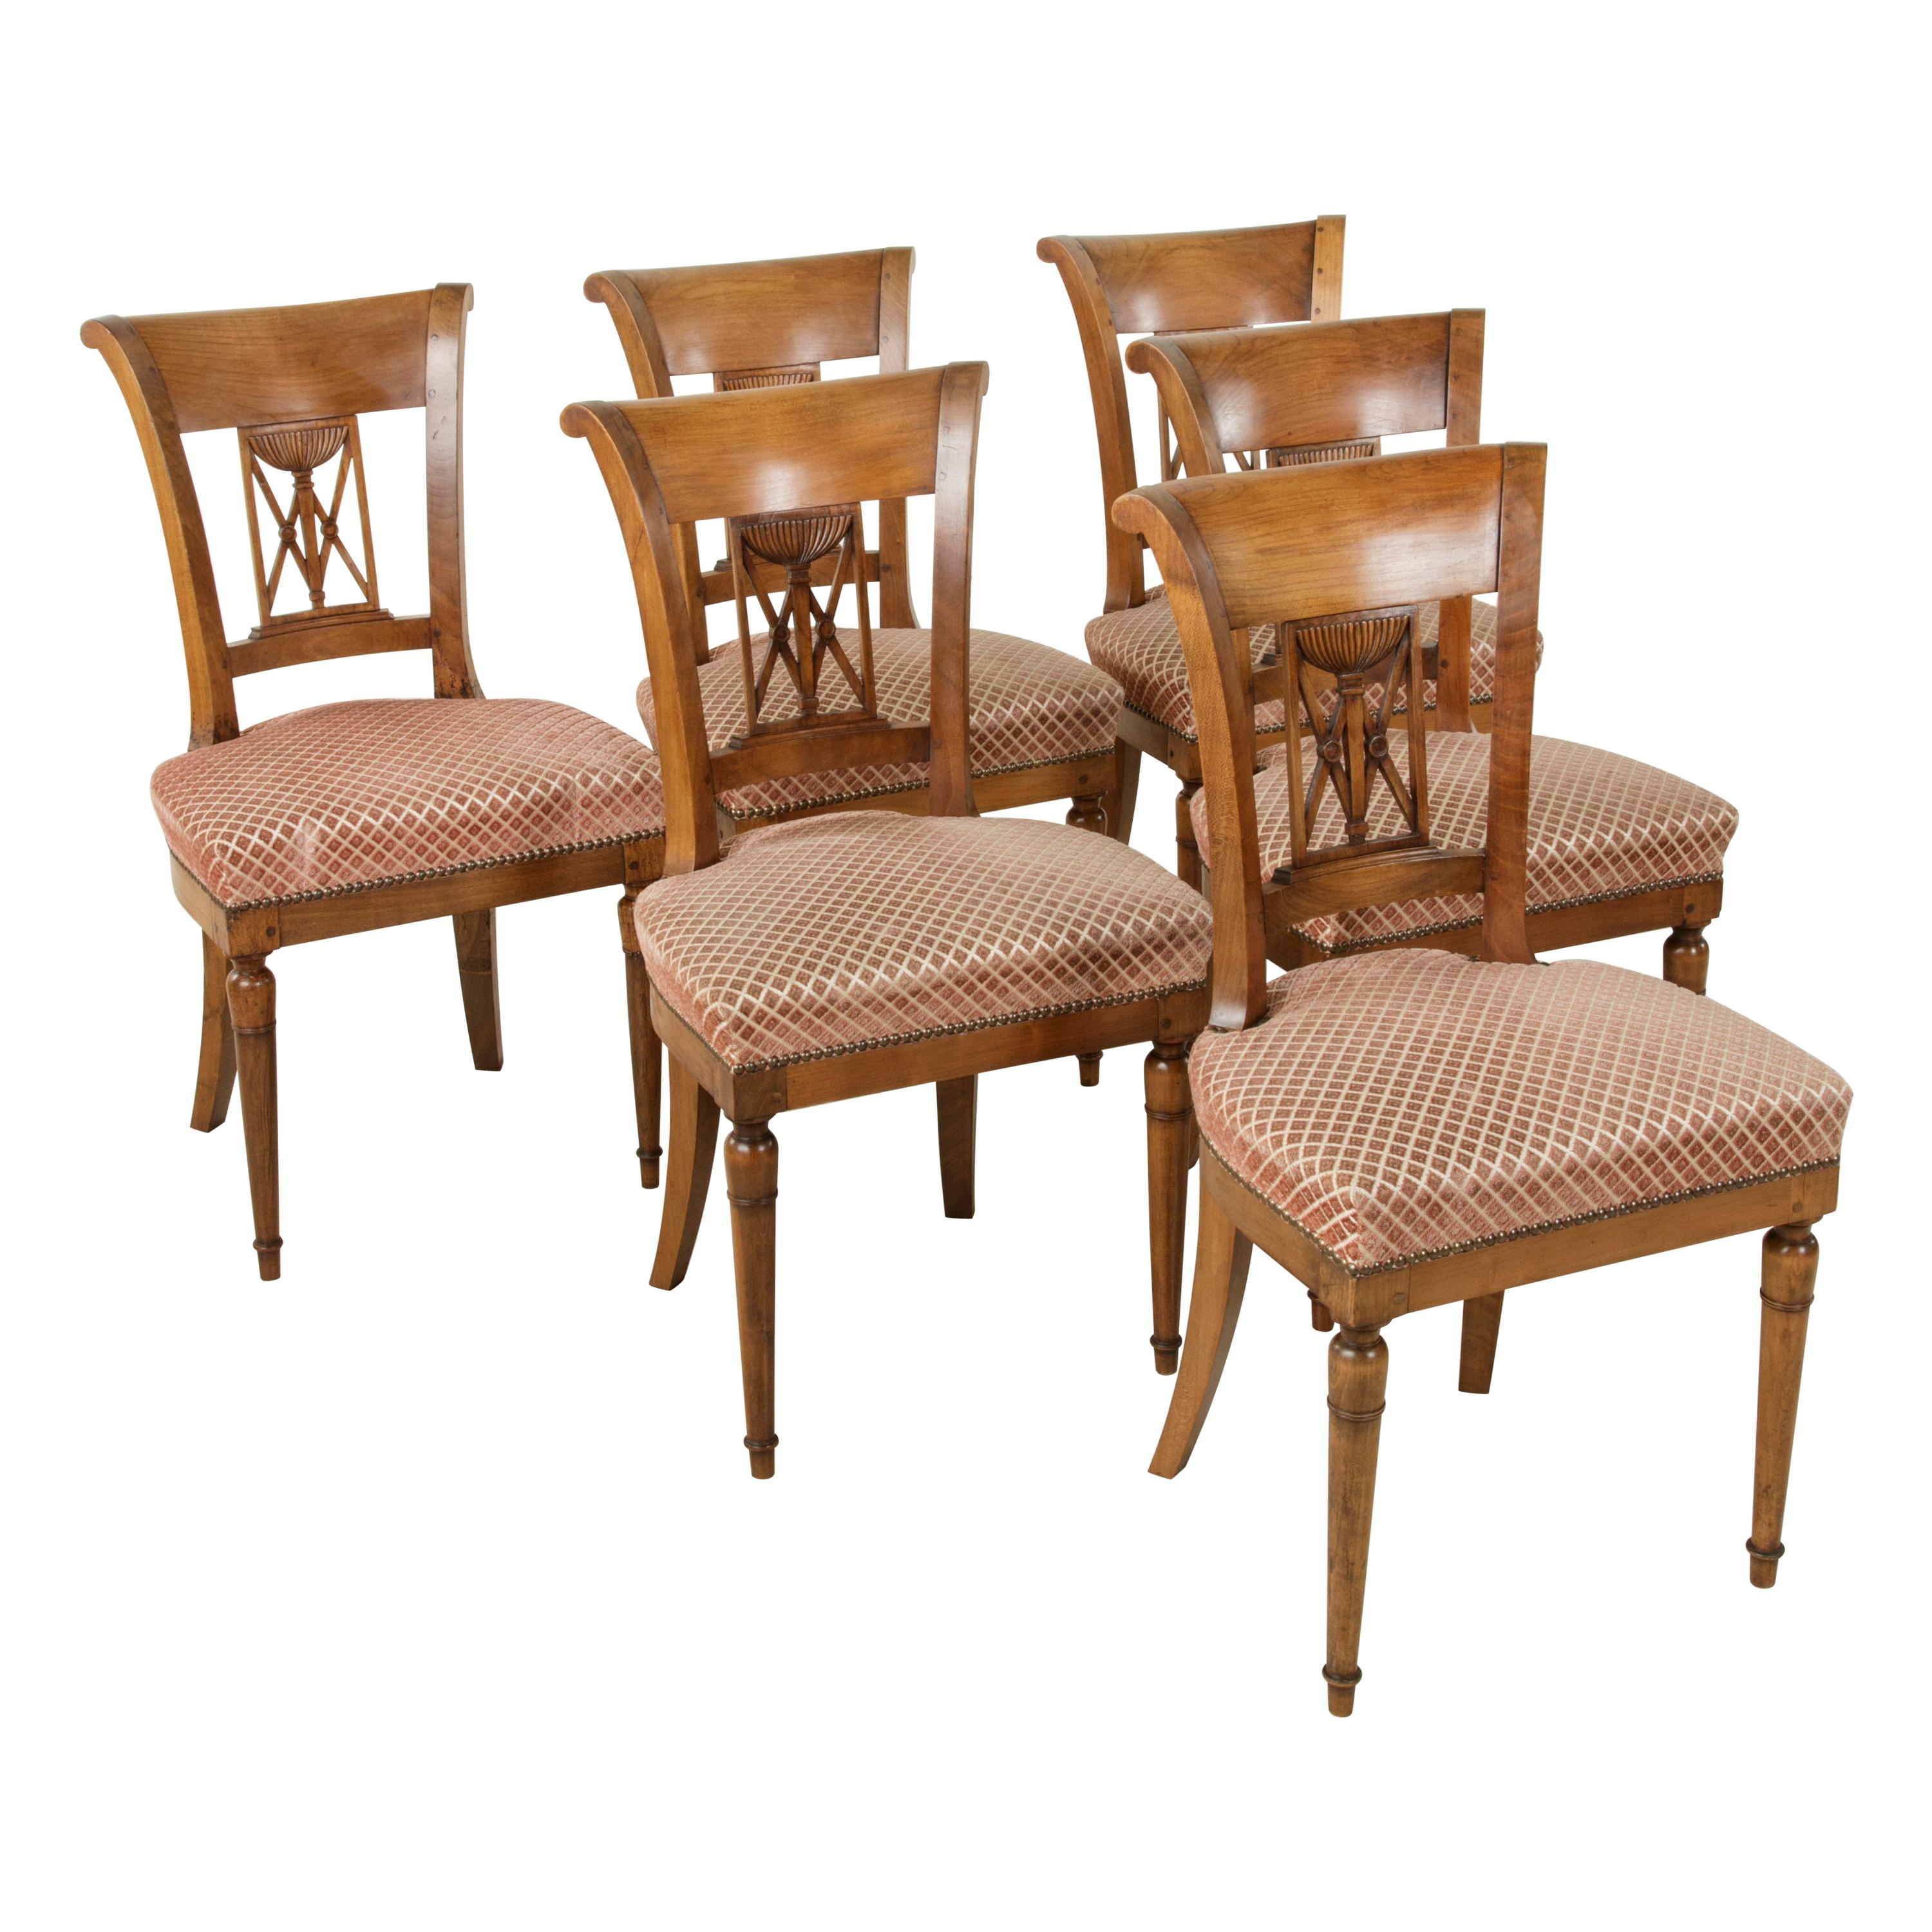 Set of Six Mid-20th Century French Directoire Style Walnut Dining Side Chairs